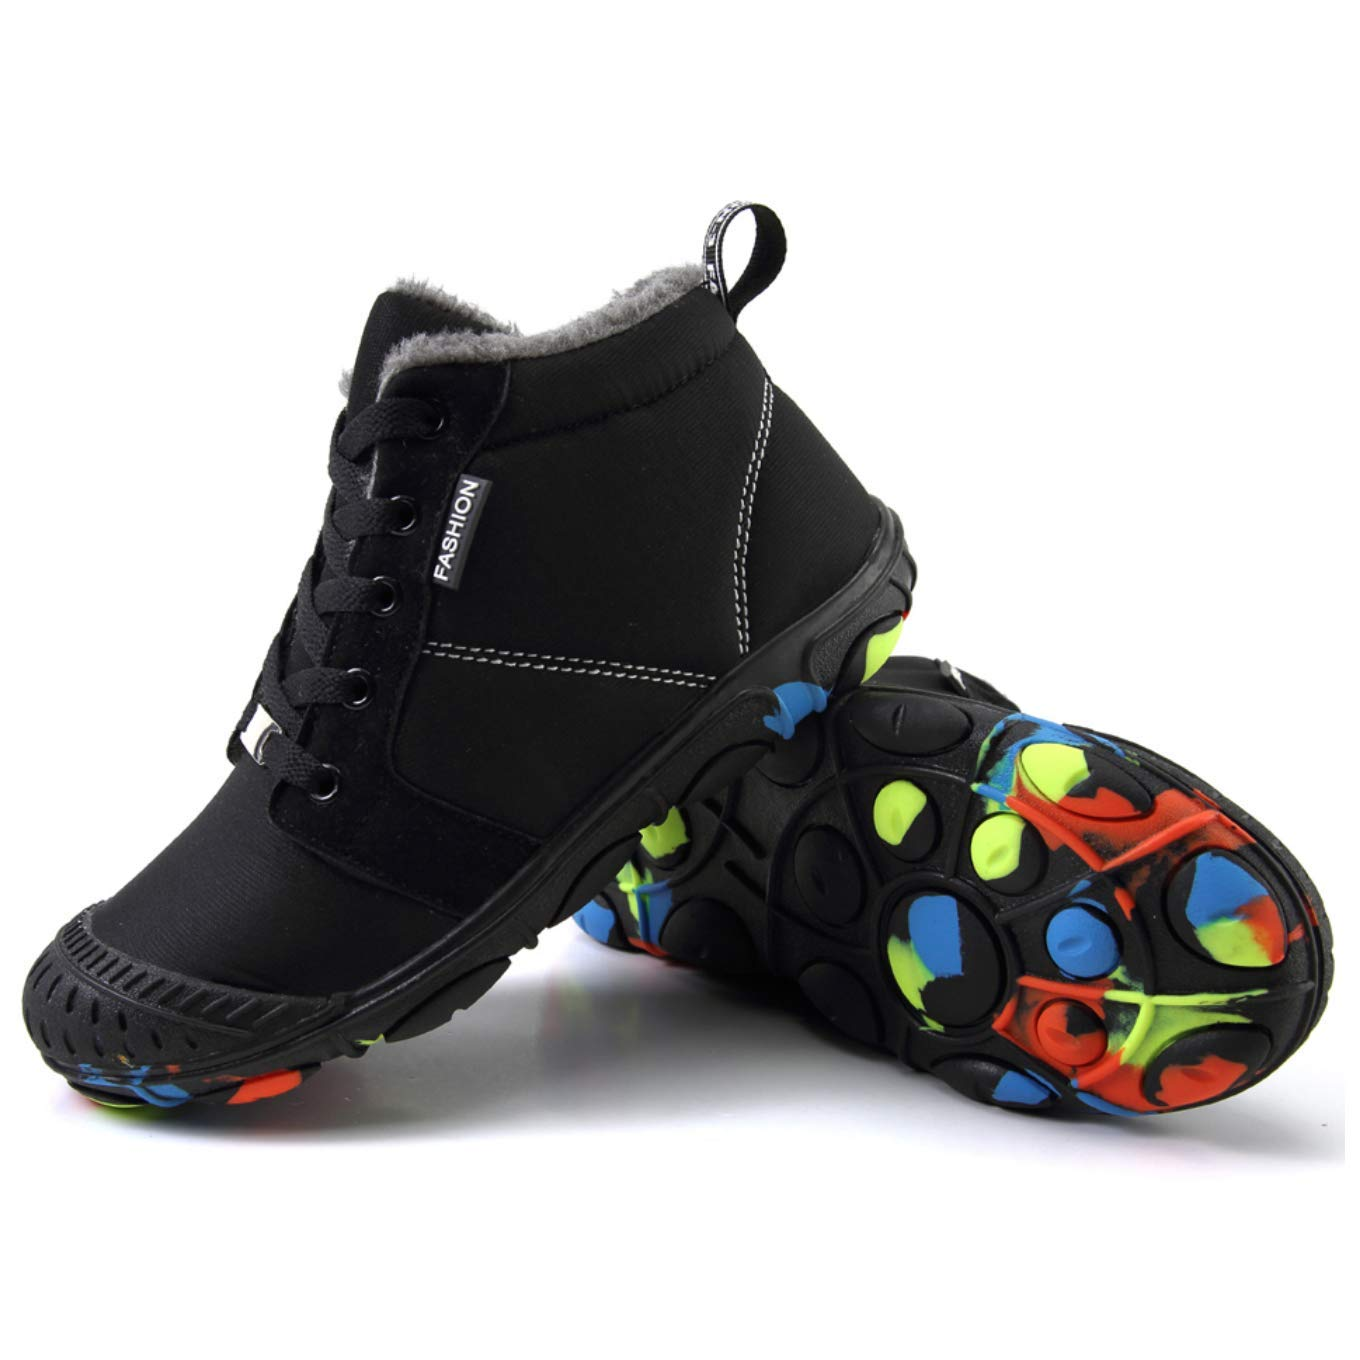 Qiucdzi Kids Snow Boots Lace-Up Waterproof Non-Slip High Top Shoes Boys Girls Fur Lining